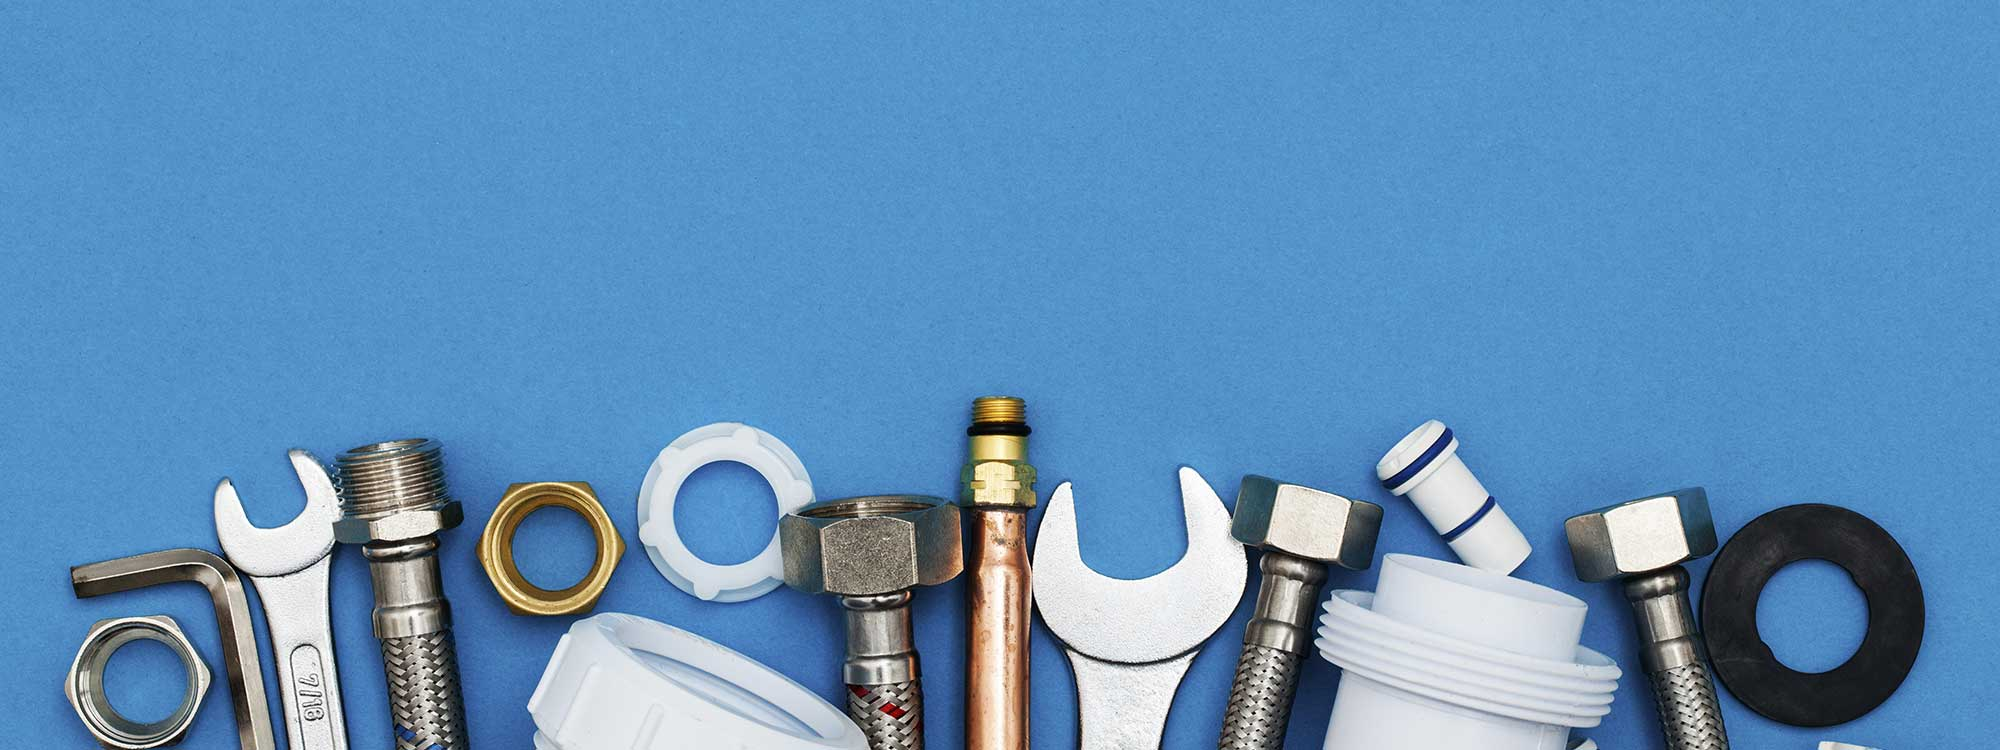 Plumbing, Air Conditioning & Heating Services in Leamington ON | DH&C Mechanical